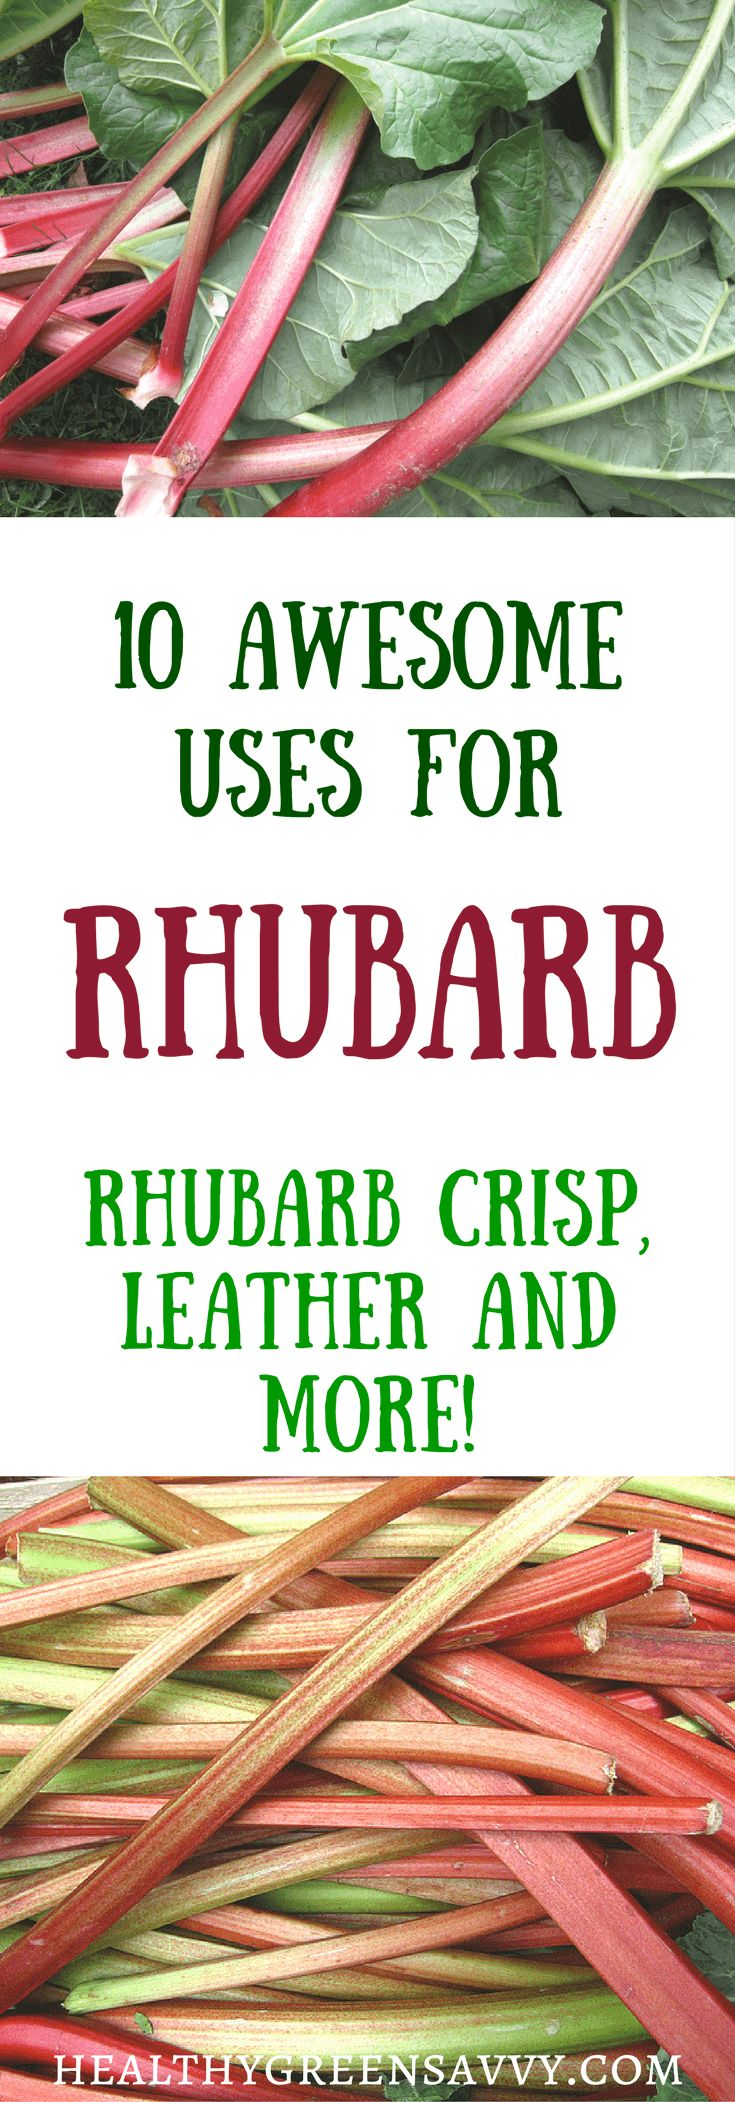 10 wonderful uses for rhubarb, a healthy, low-calorie vegetable used as a fruit. Click to read more or pin to save for later. | rhubarb recipes | healthy treats | edible landscaping | healthy food |